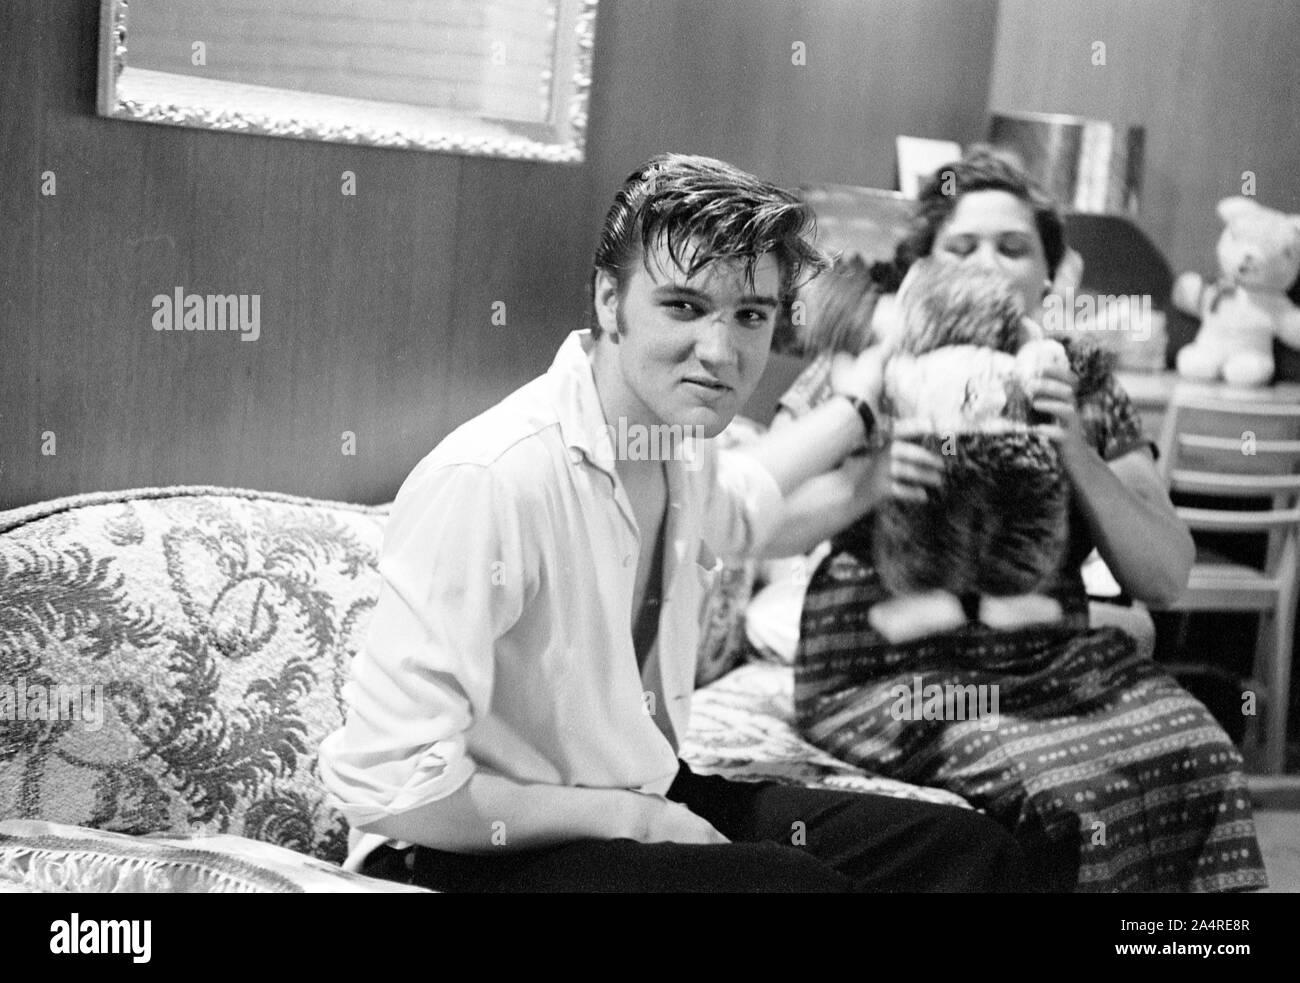 Elvis Presley with his mother Gladys Presley, in the living room at 1034 Audubon Drive, Memphis, Tennessee, May 29, 1956 Stock Photo